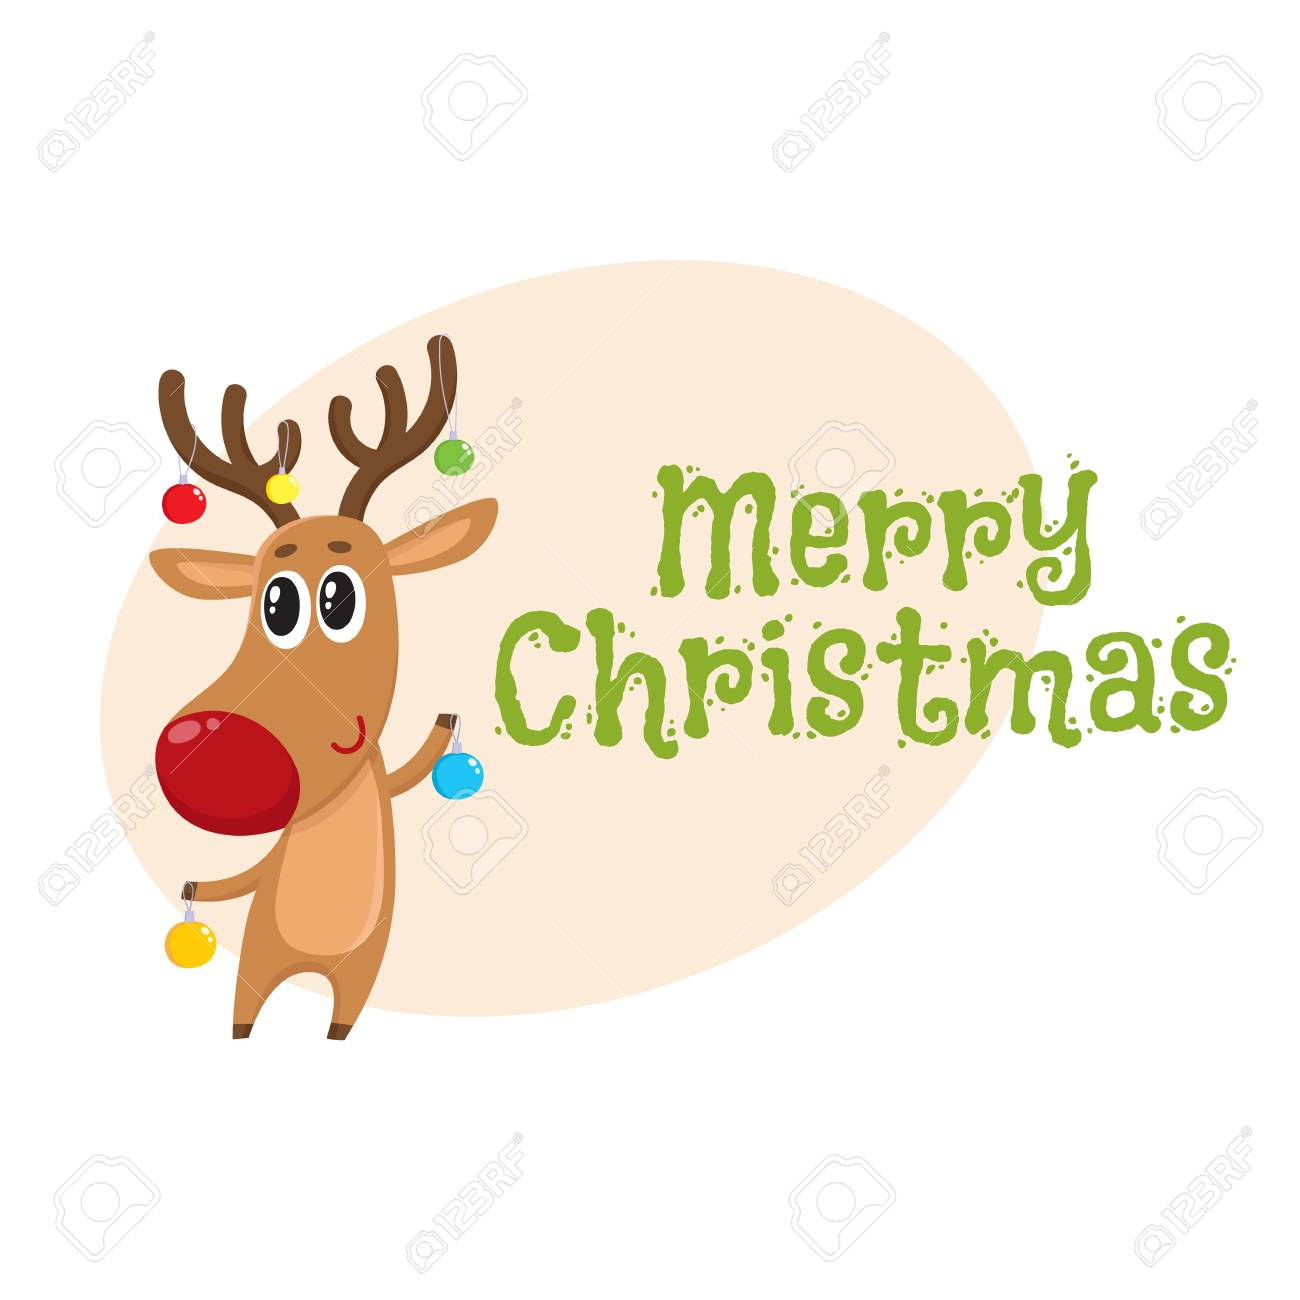 merry christmas greeting card template with funny reindeer holding